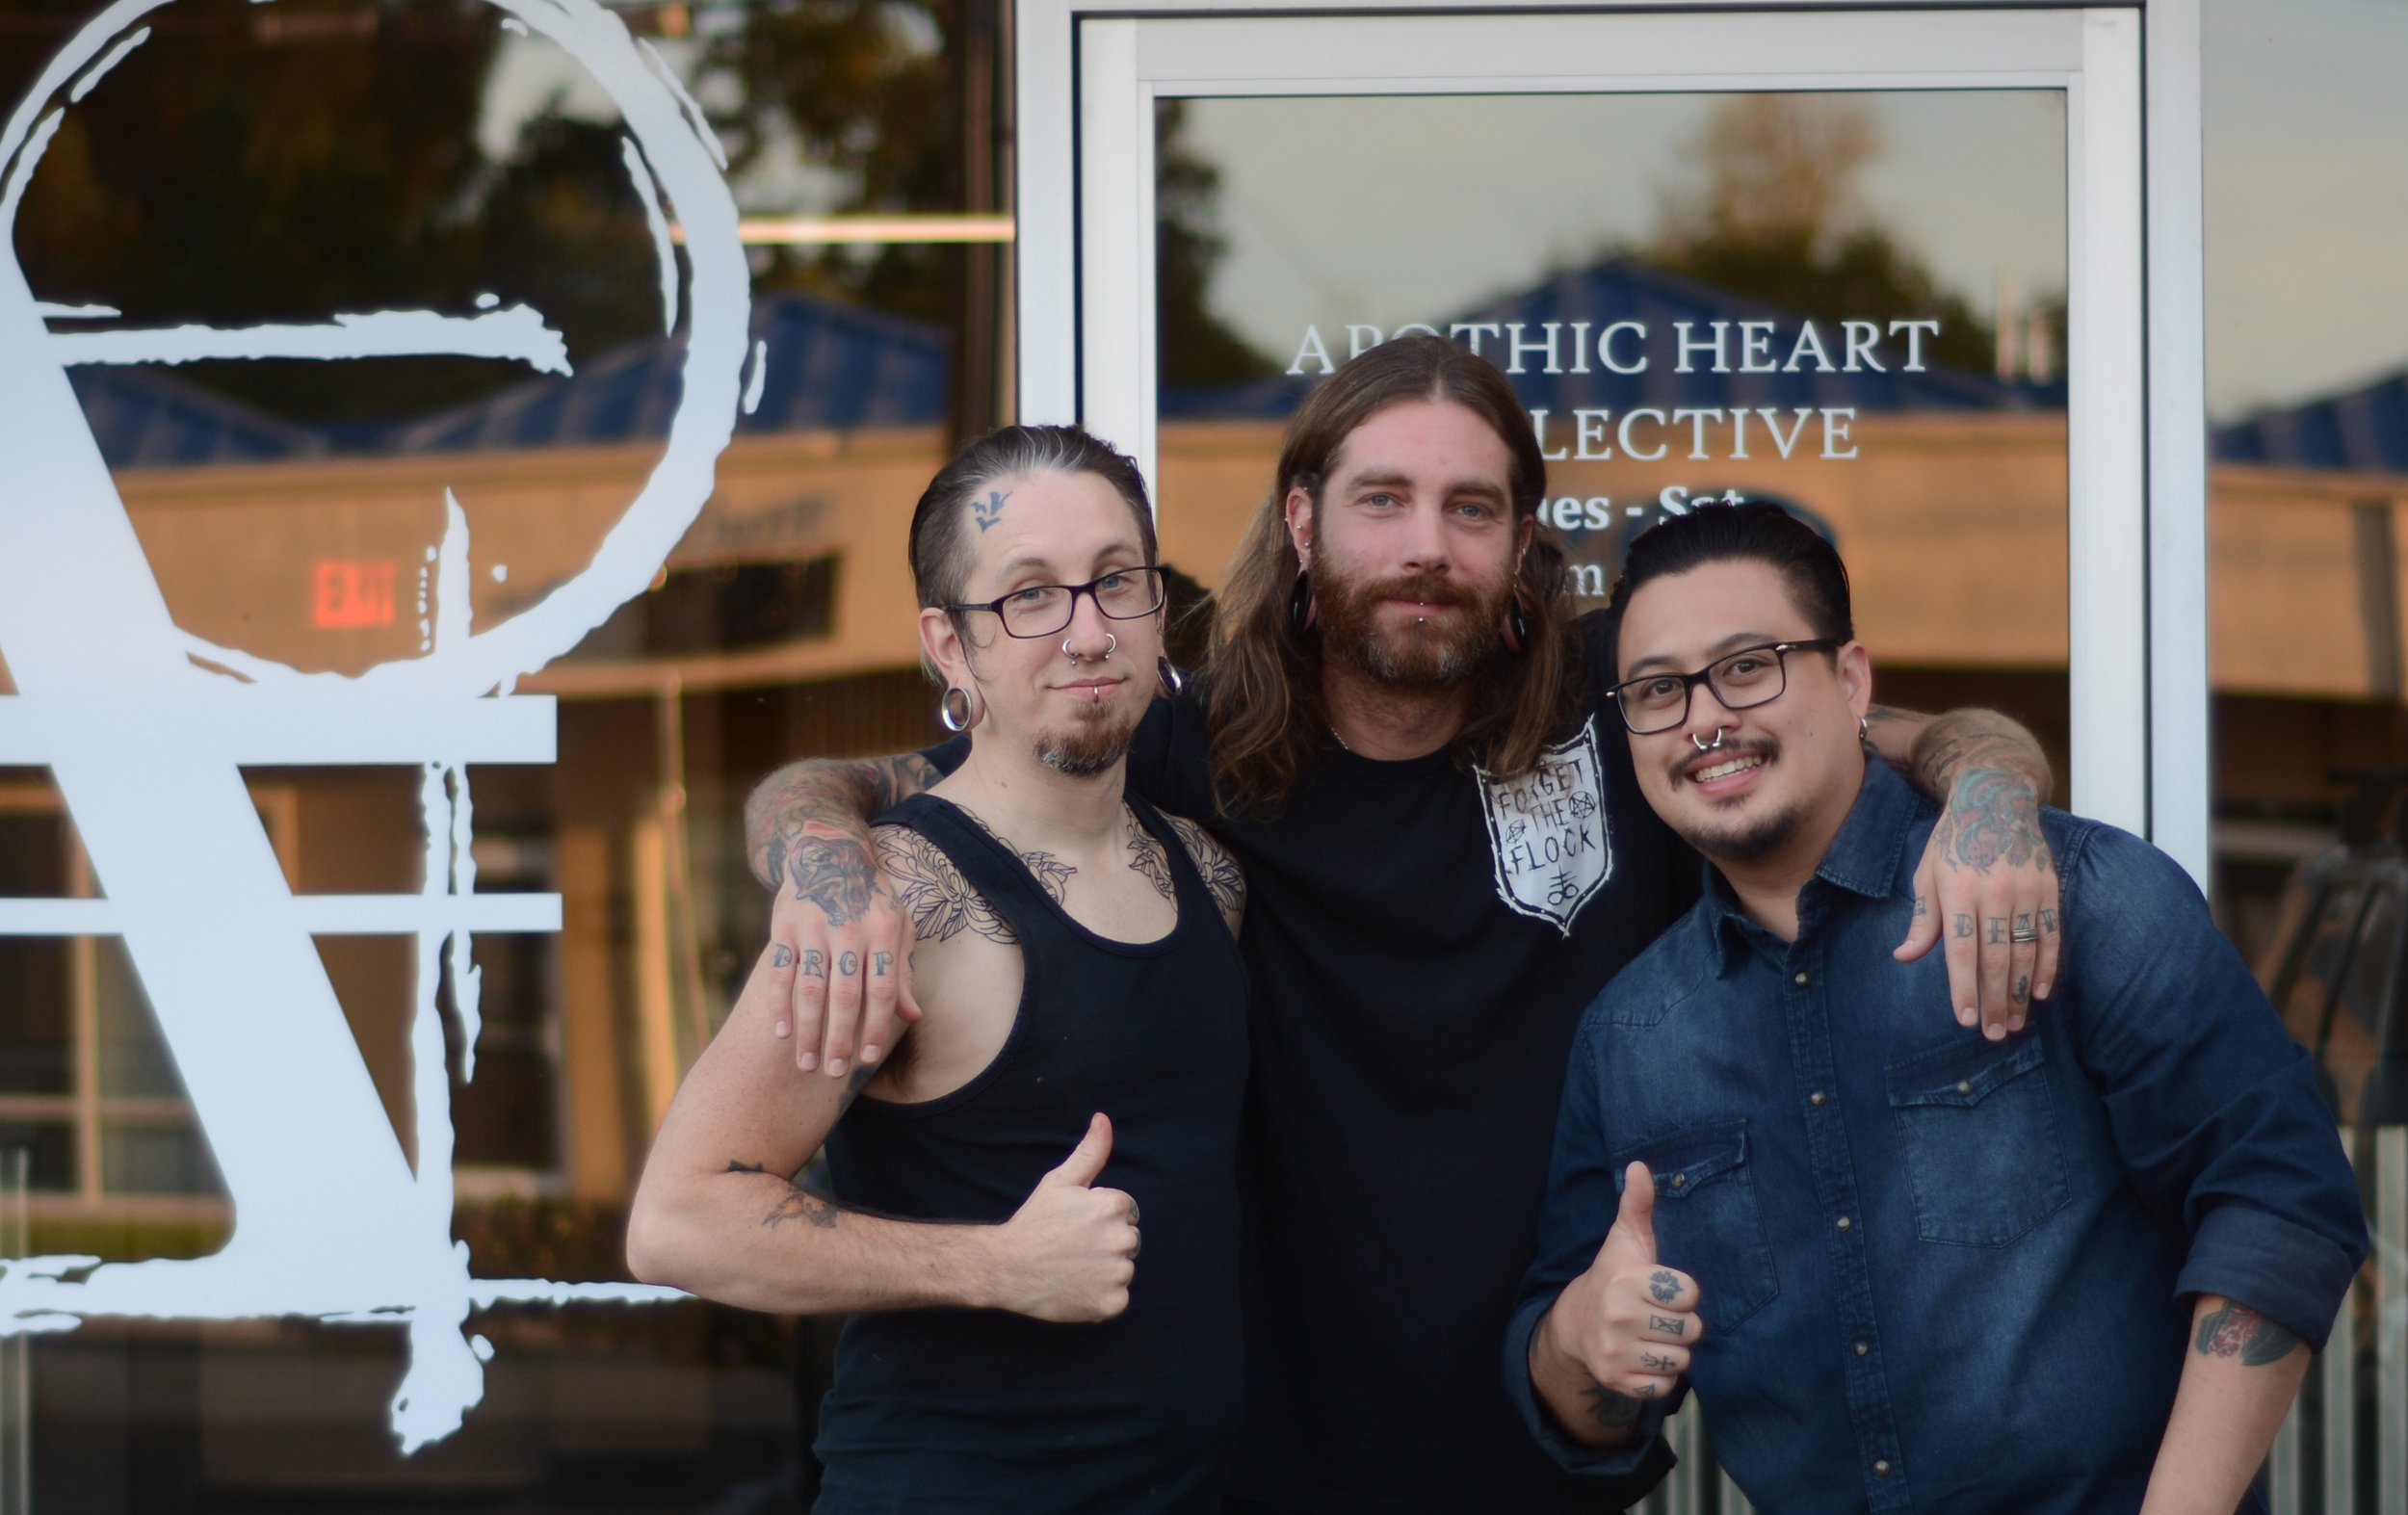 Apothic Heart Tattoo Collective Owners from left to right: Eric MacLachlan, Keith Cromie, and Andre Garcia